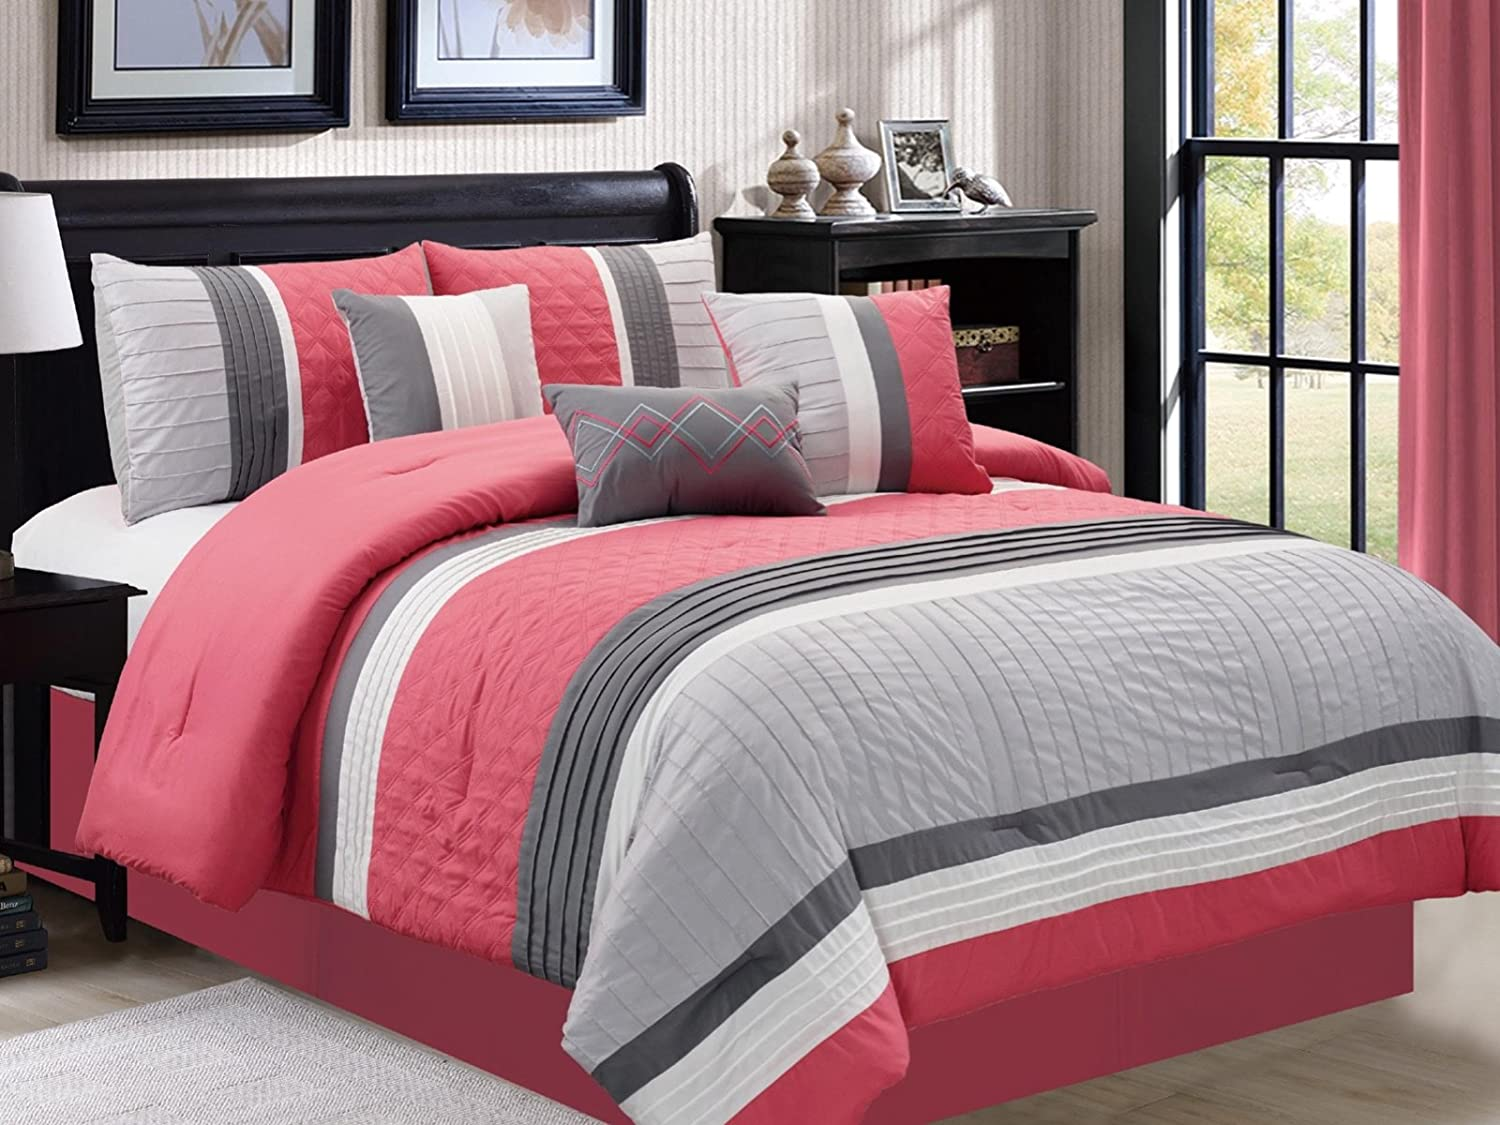 Embossed 7-Piece Comforter Set Bedding - Pink & Gray